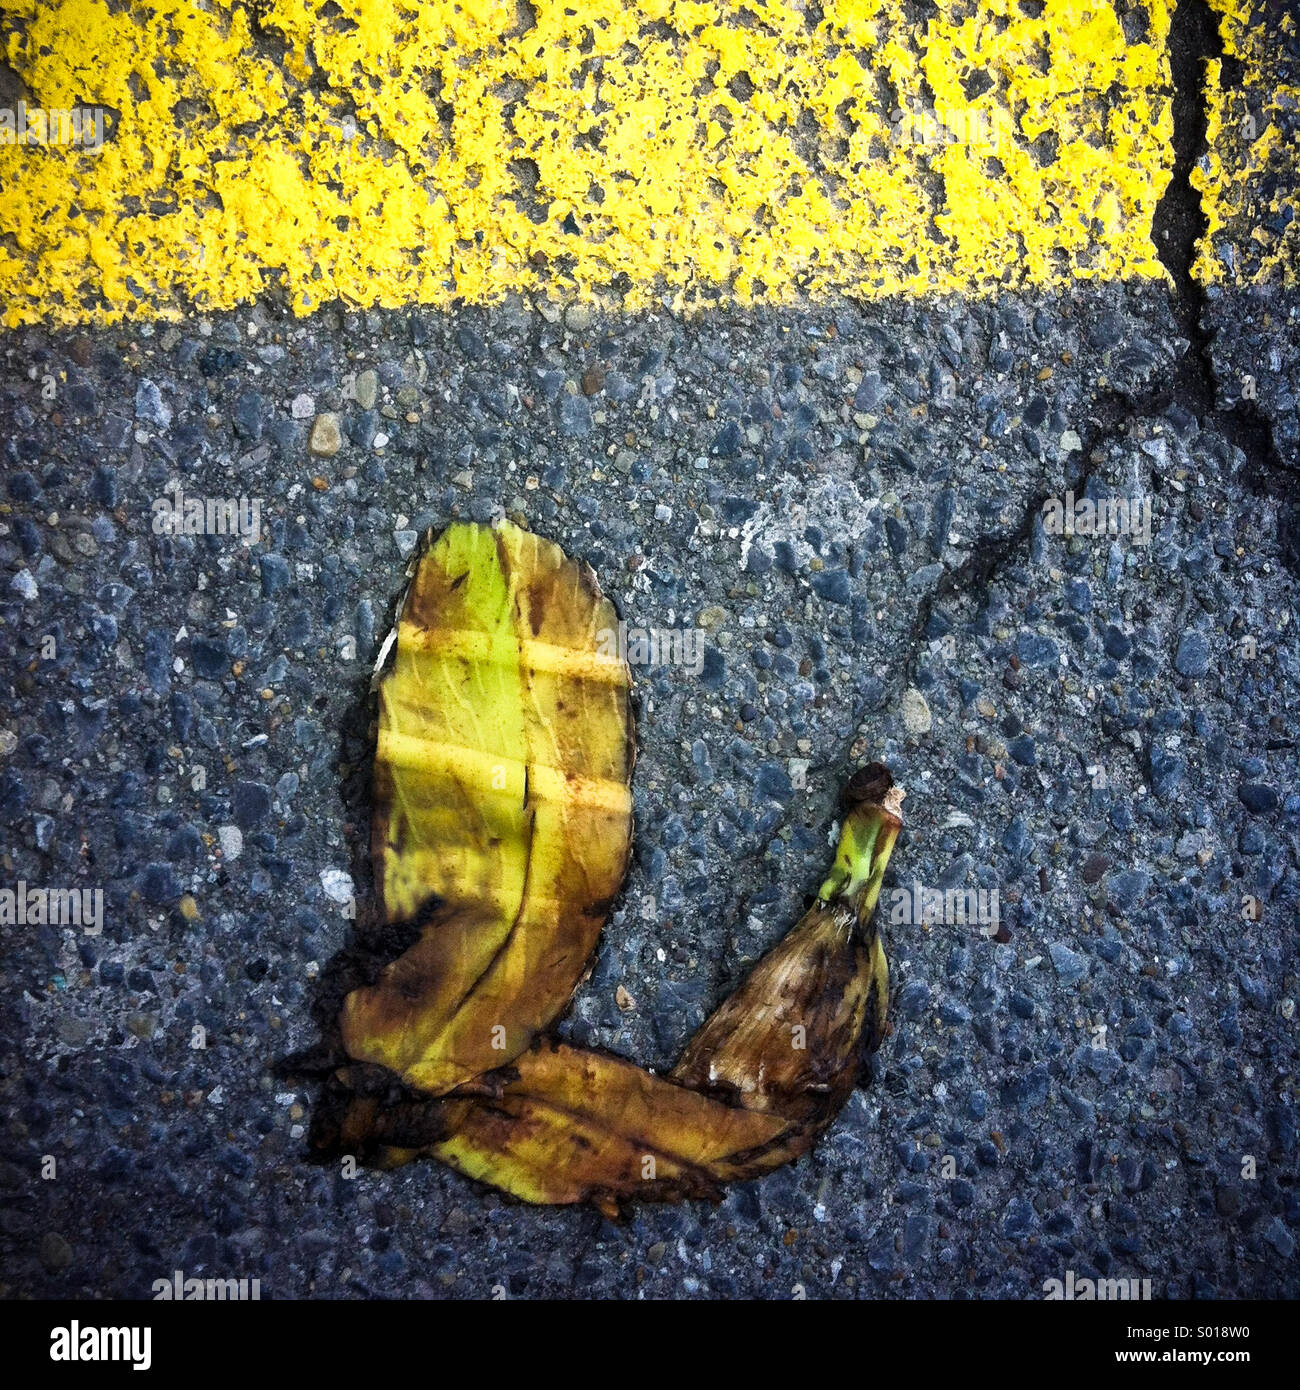 A banana peel that has been run over by a car lying on an asphalt road - Stock Image